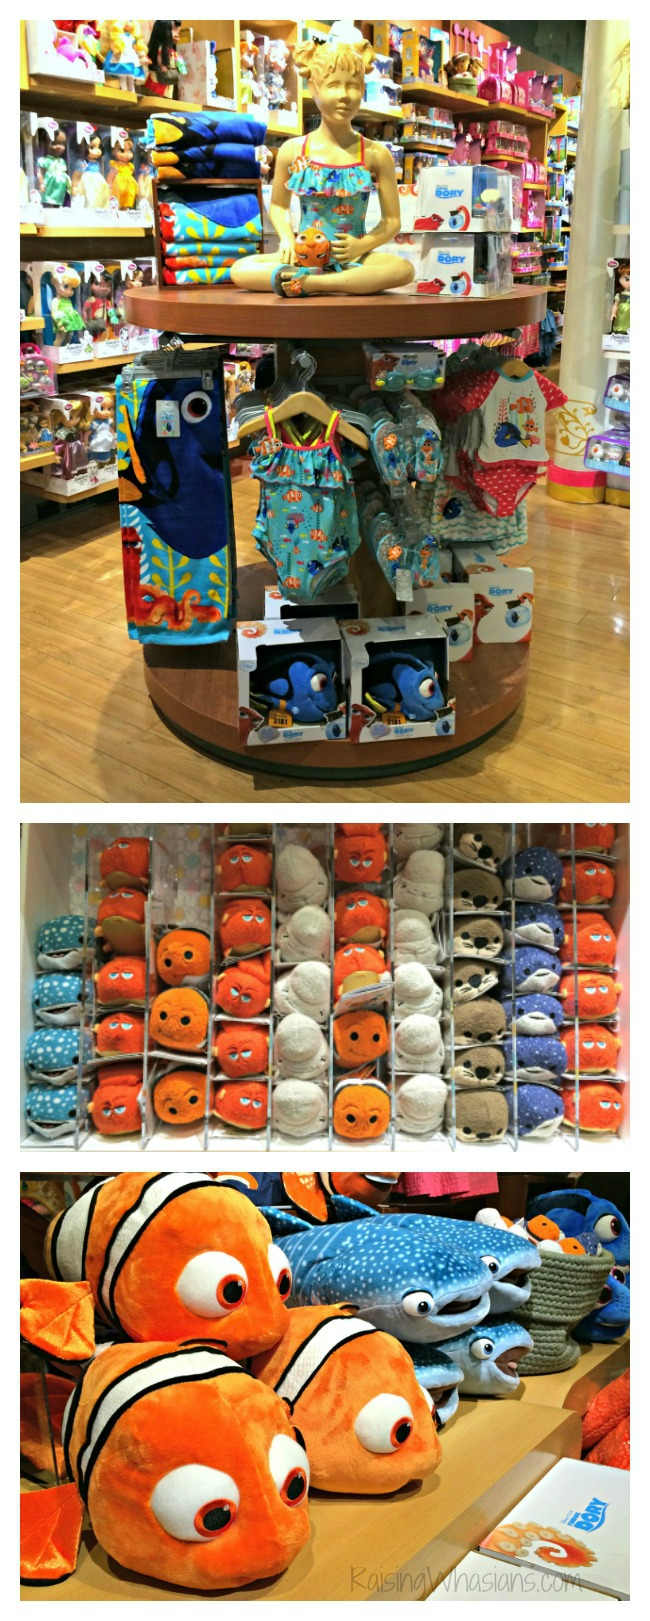 Disney store finding Dory